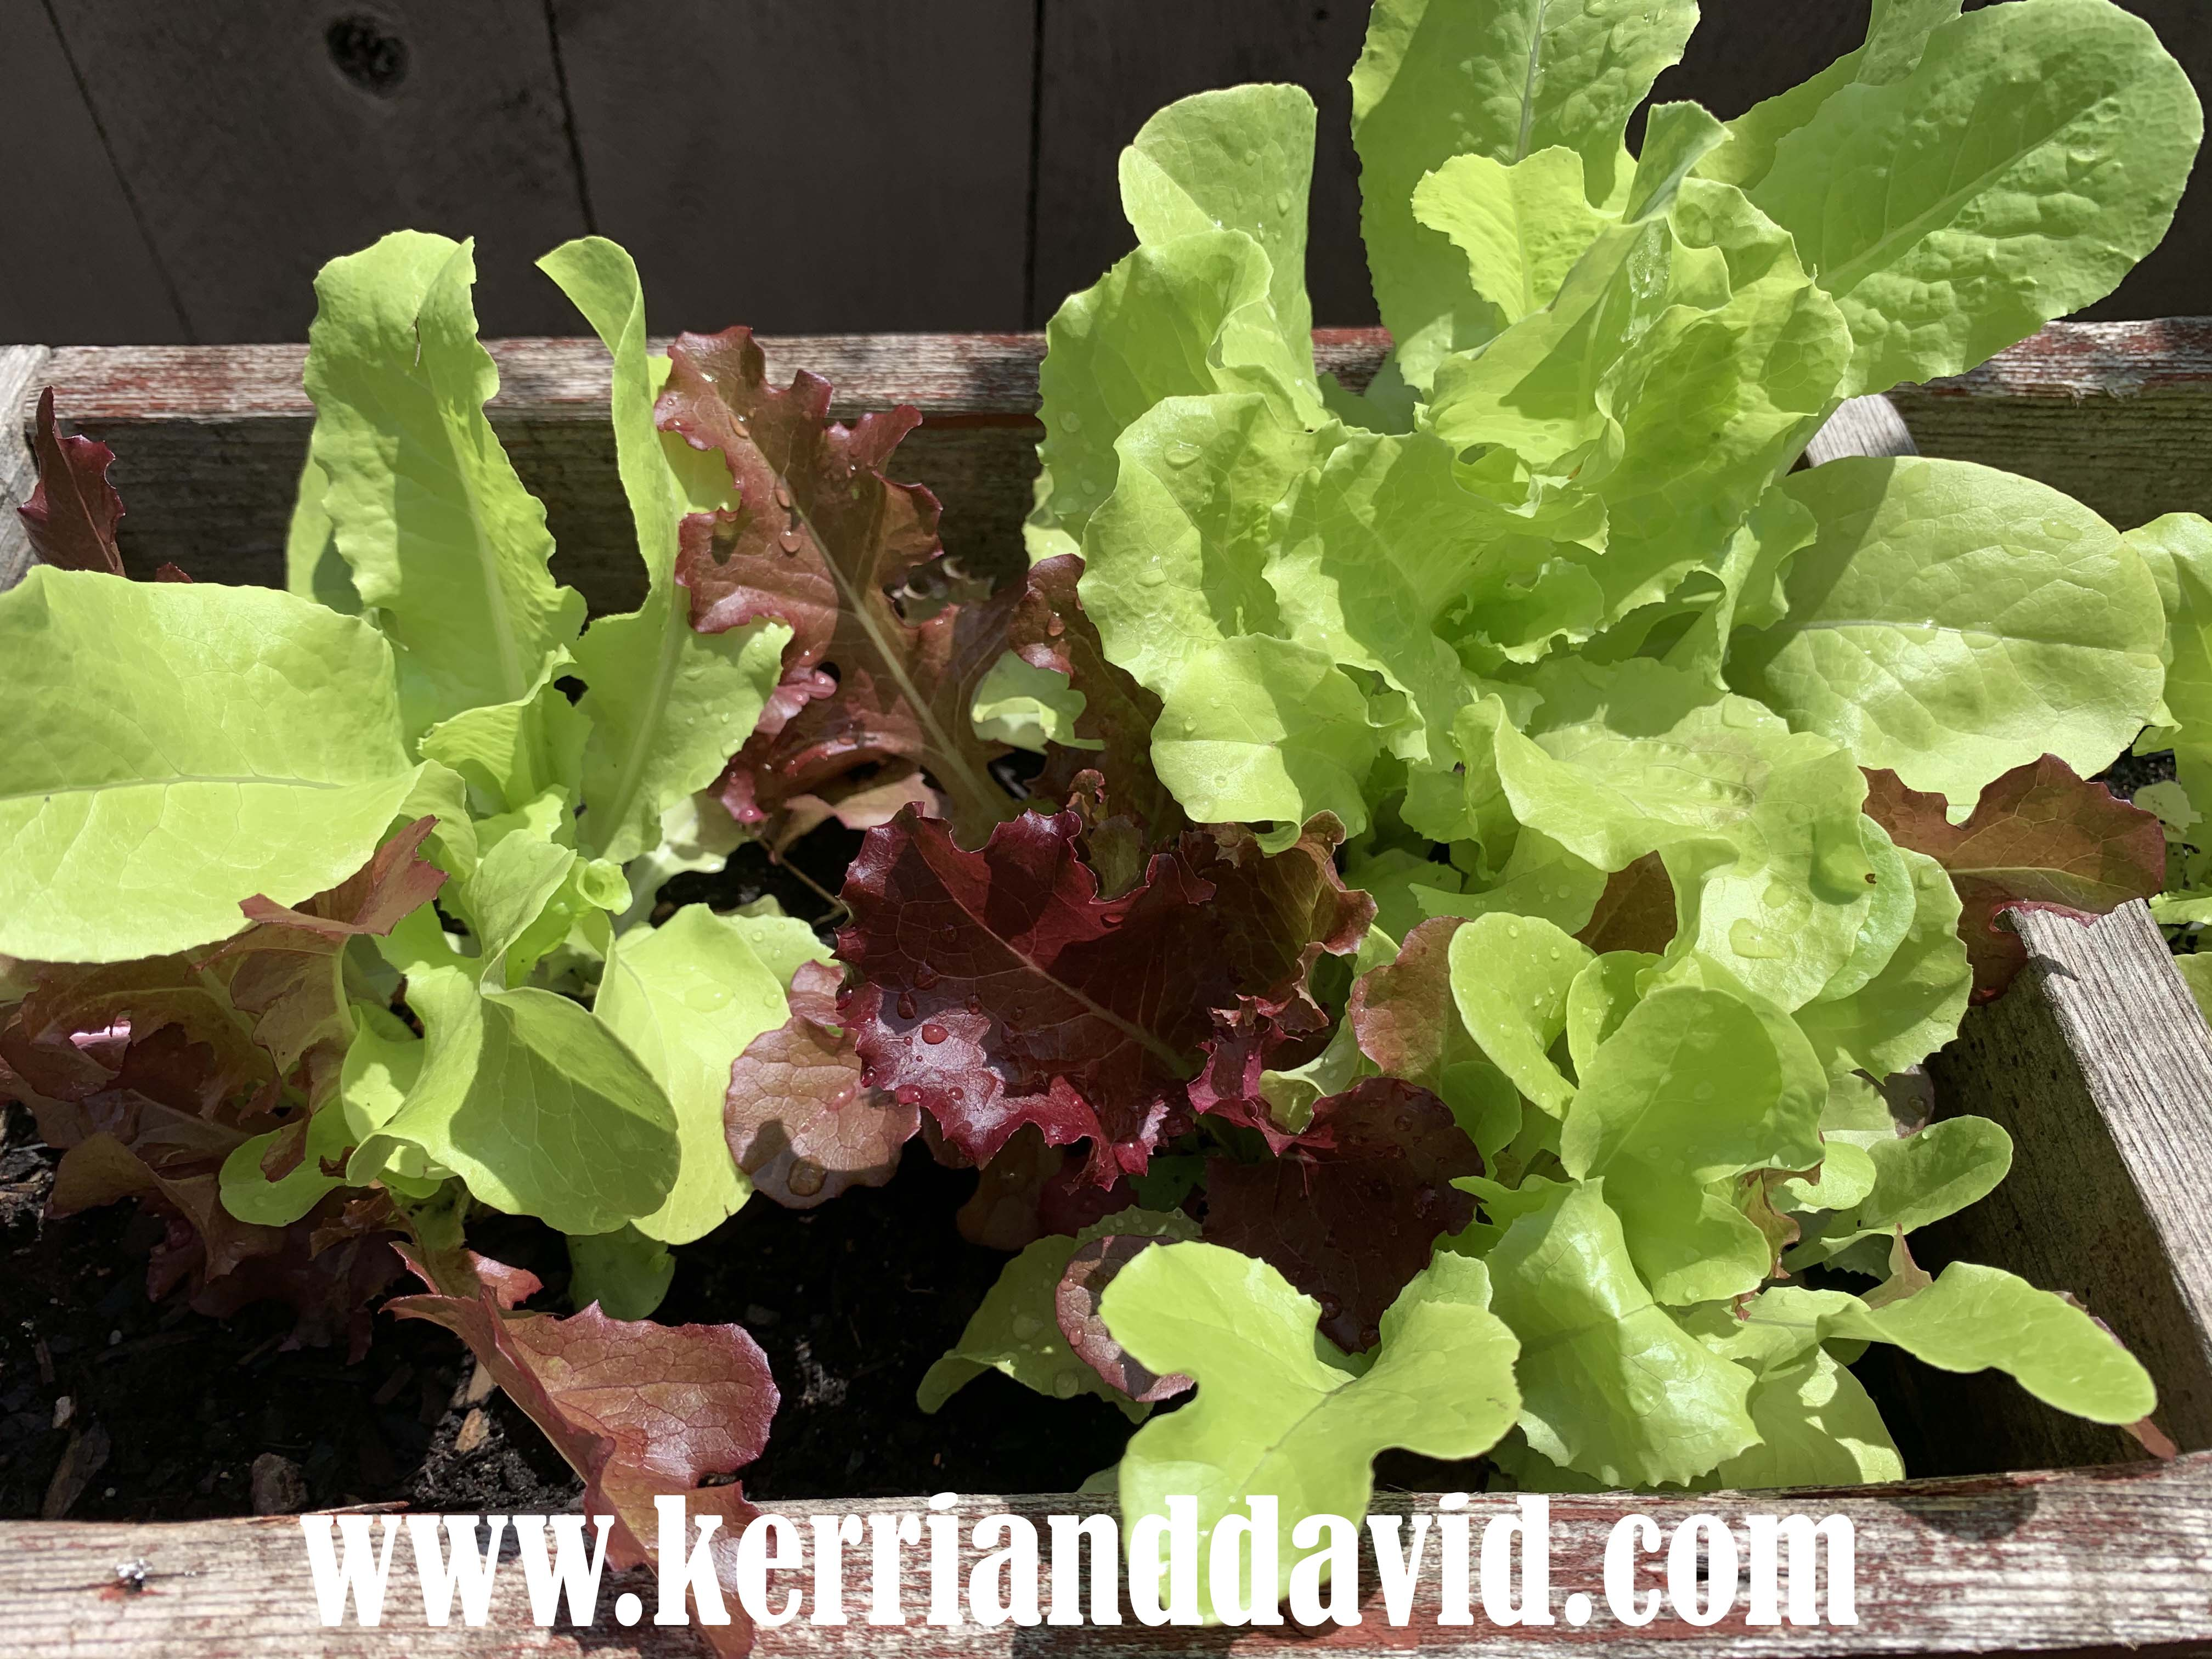 lettuce website box copy